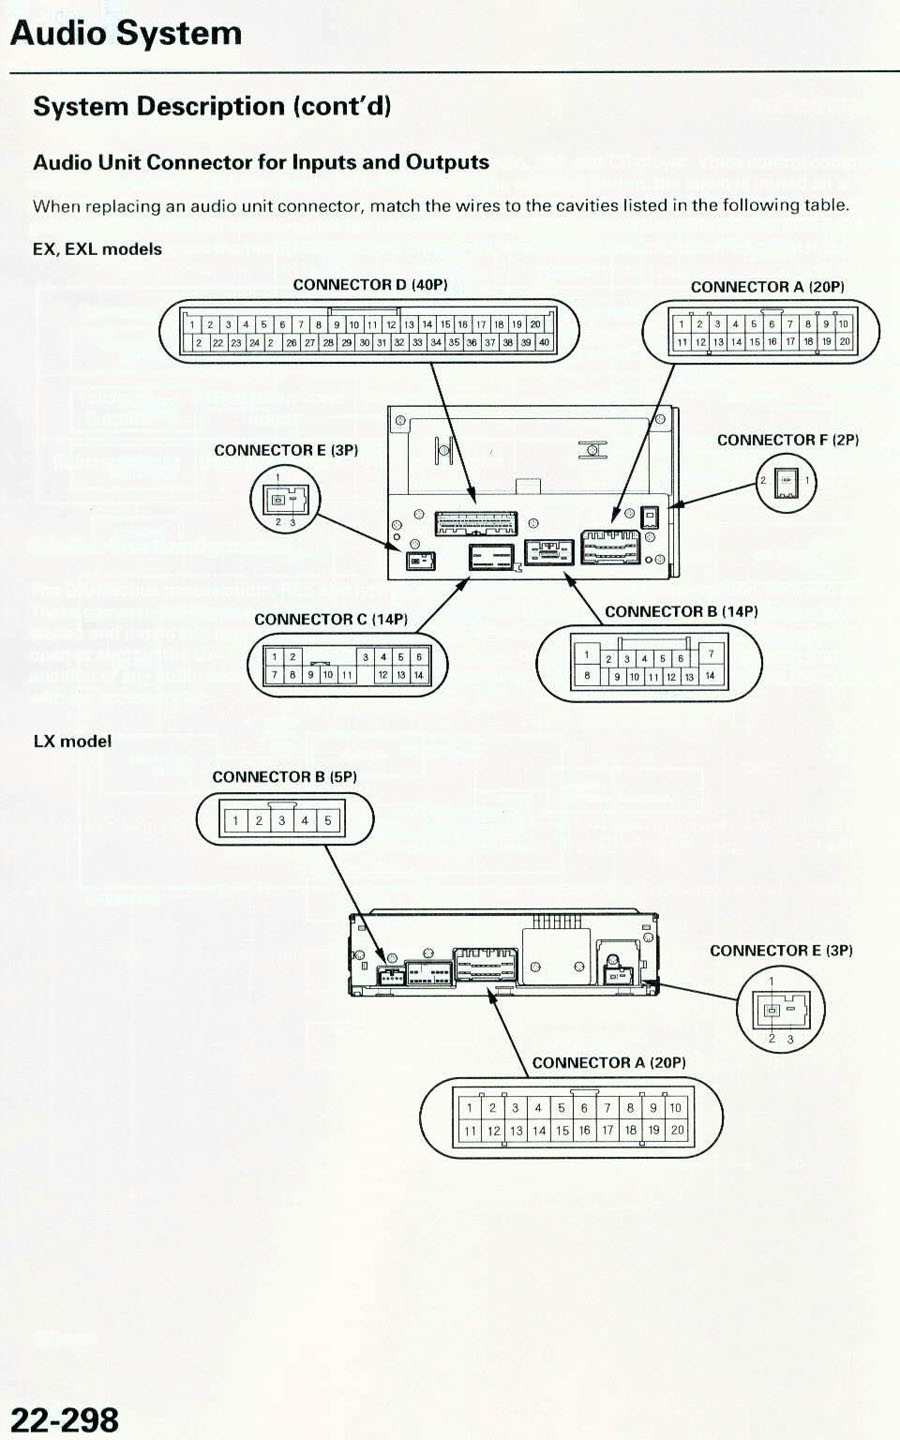 wiring diagram for 2008 honda pilot wire management \u0026 wiring diagram2003 Honda Pilot Radio Wiring Diagram #21